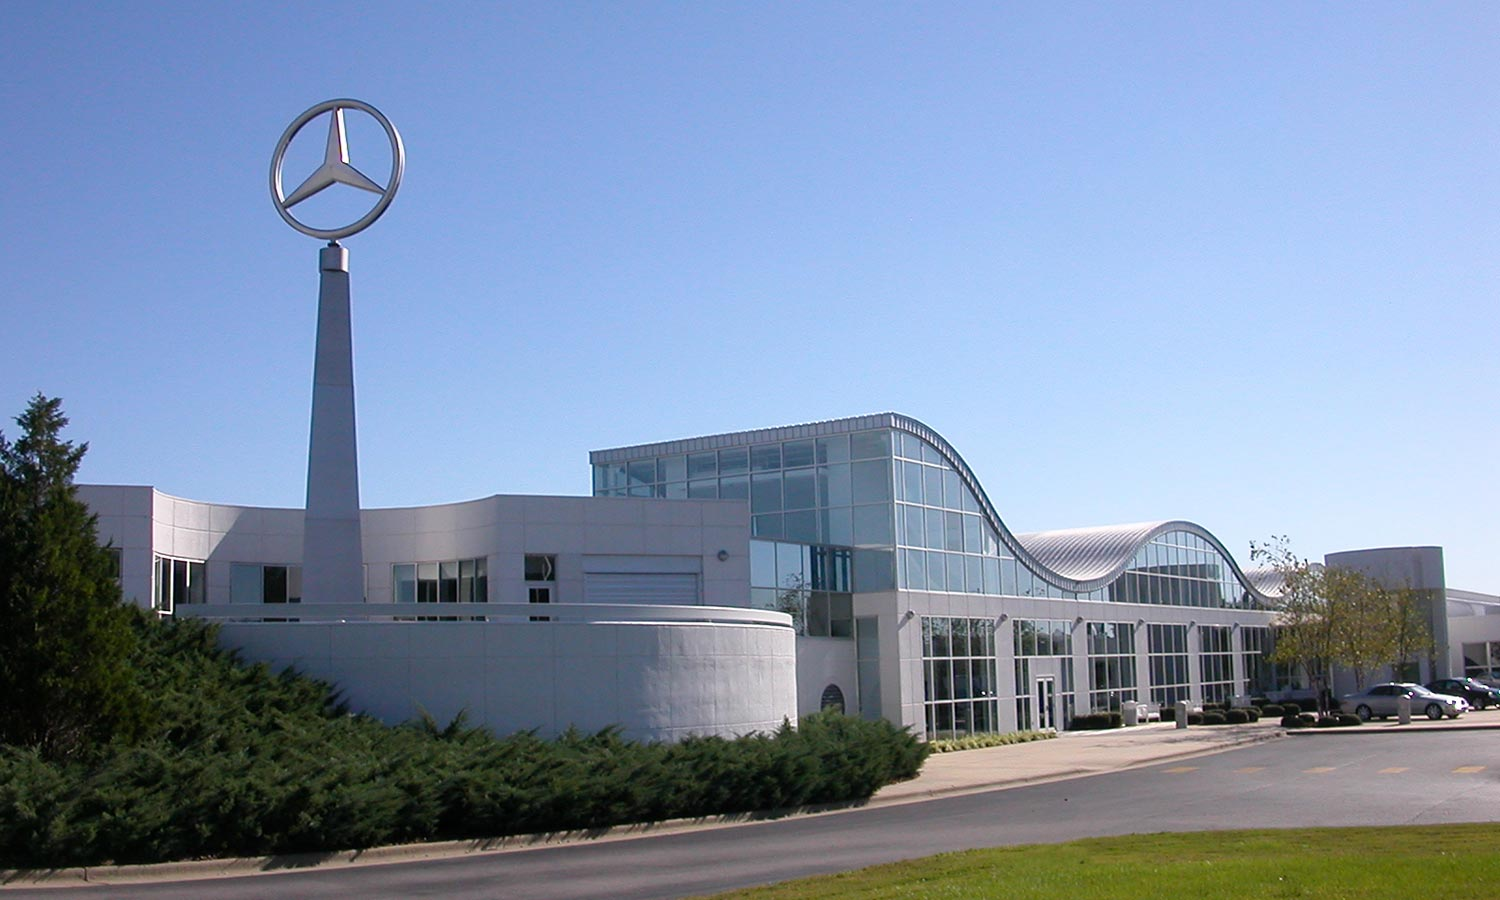 Mercedes benz customer service center lbyd engineers for Mercedes benz service centre